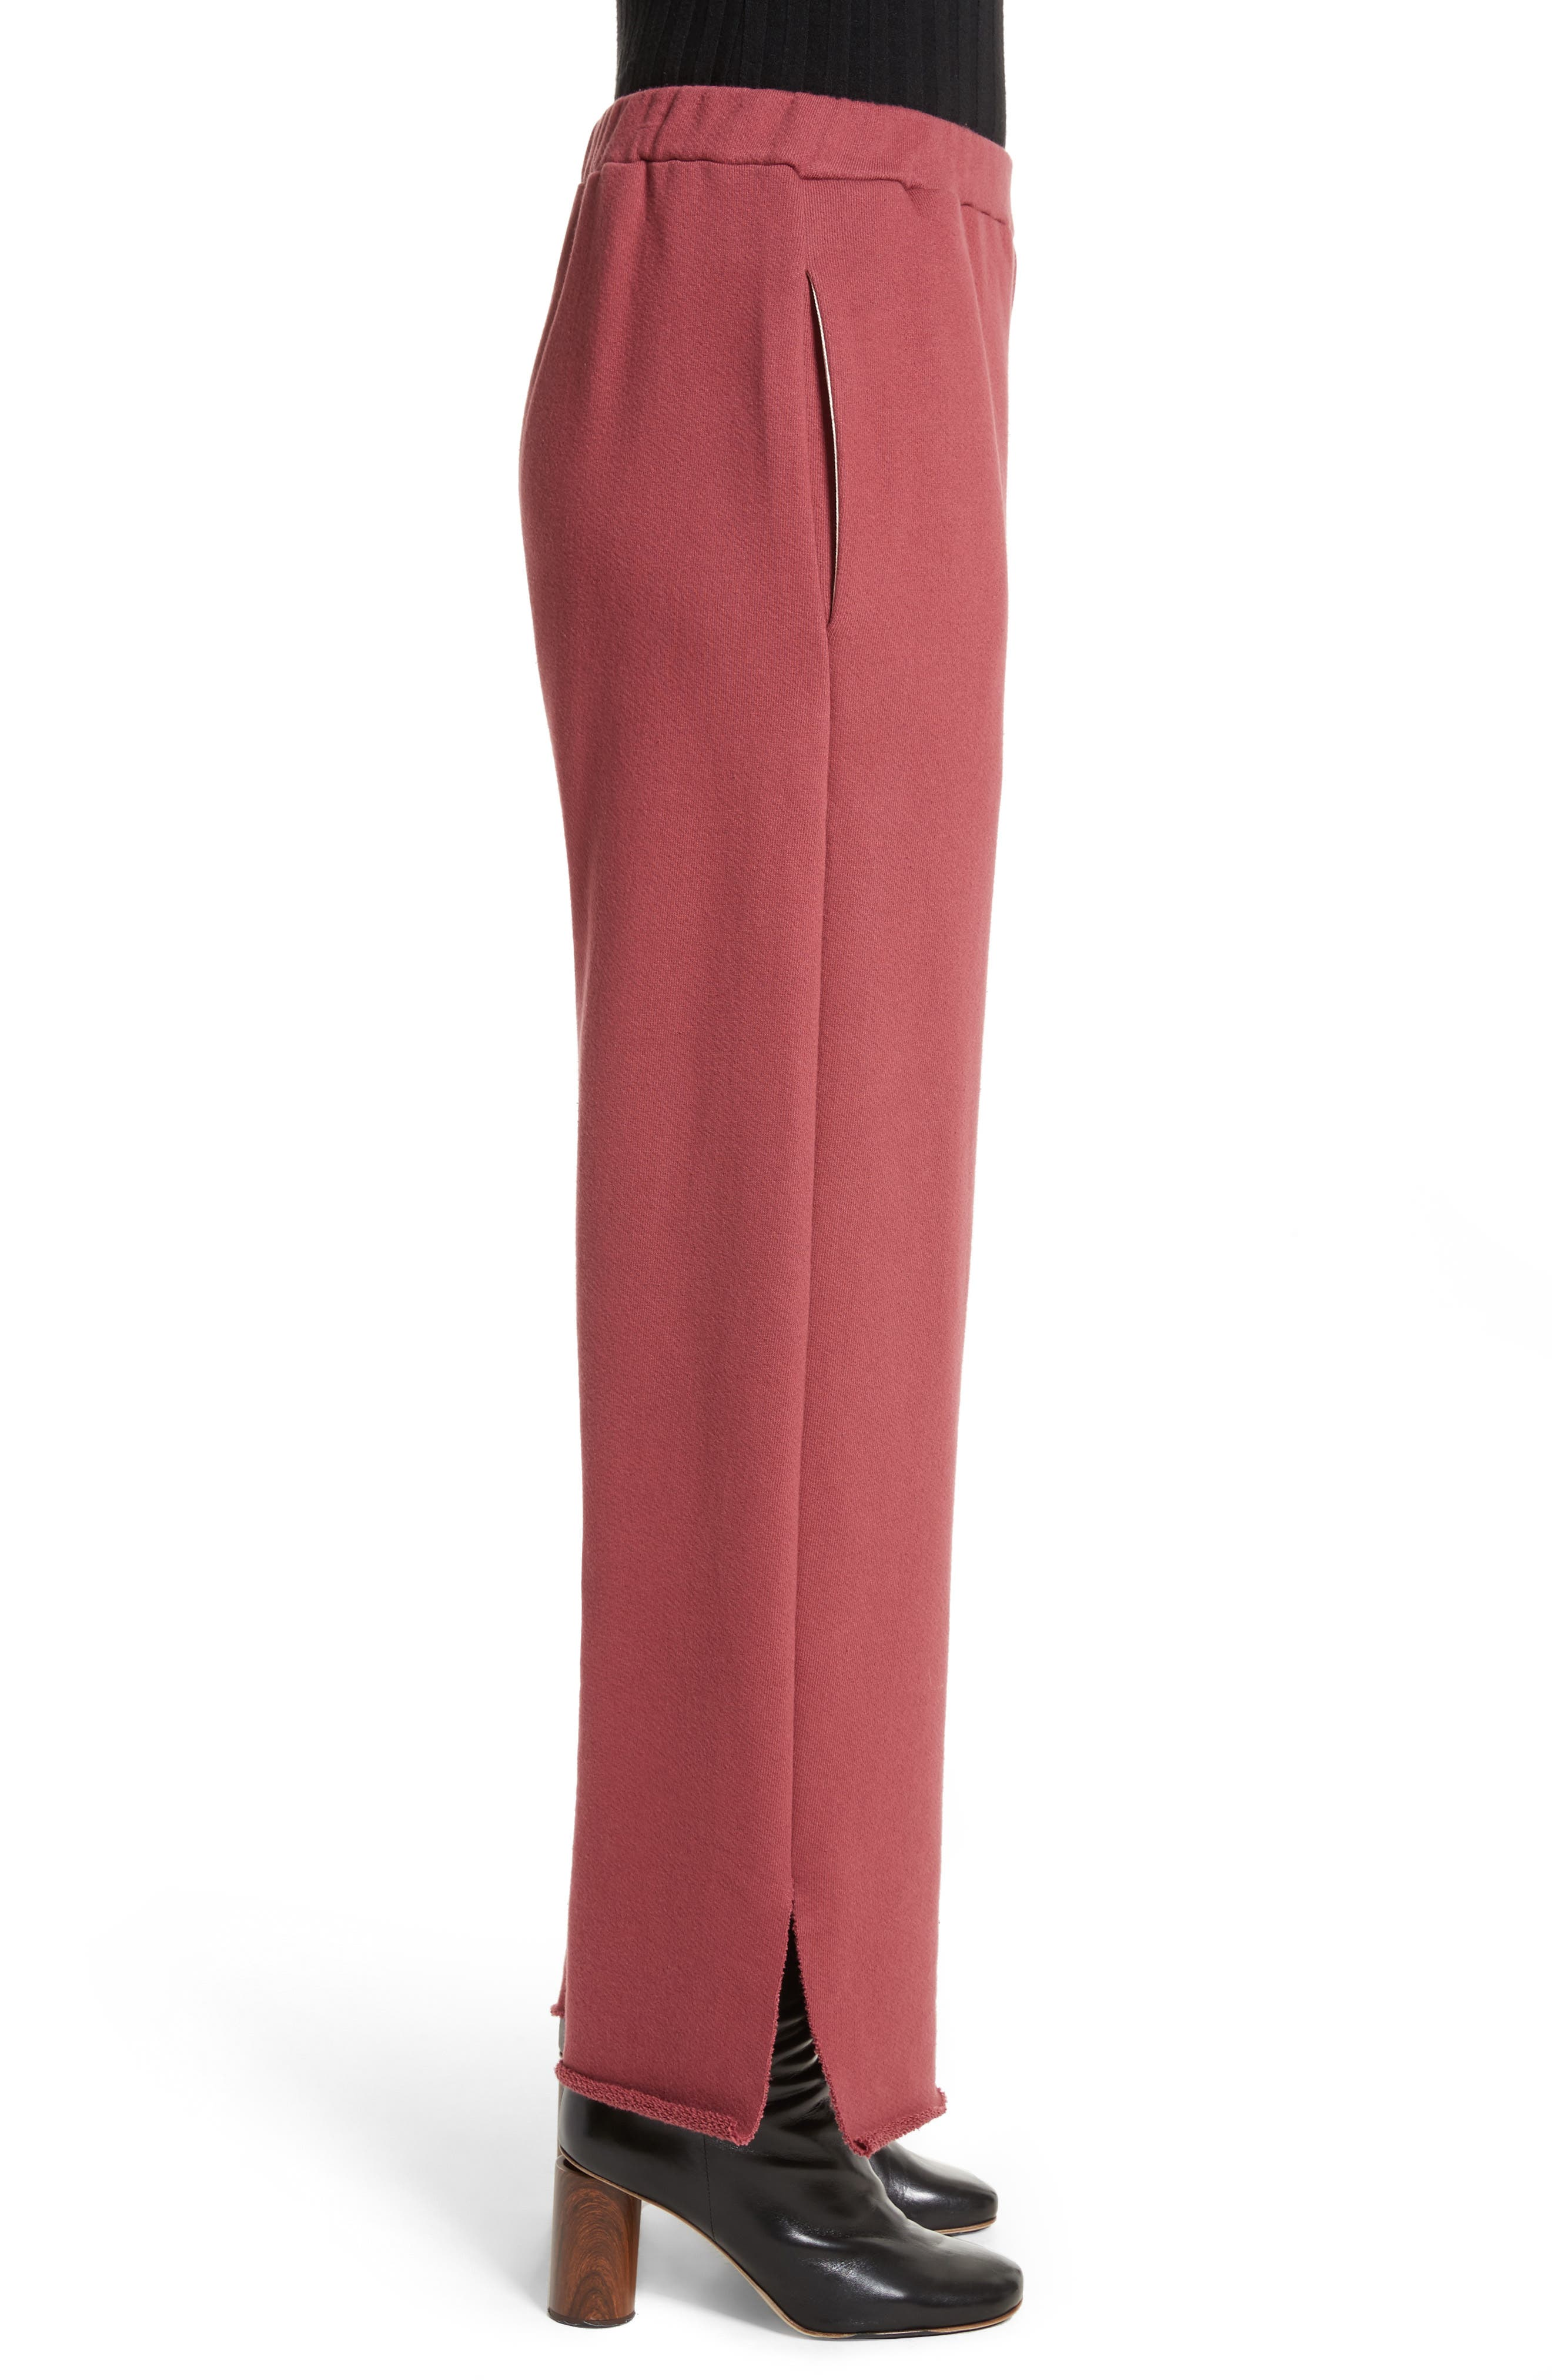 Canal French Terry Sweatpants,                             Alternate thumbnail 3, color,